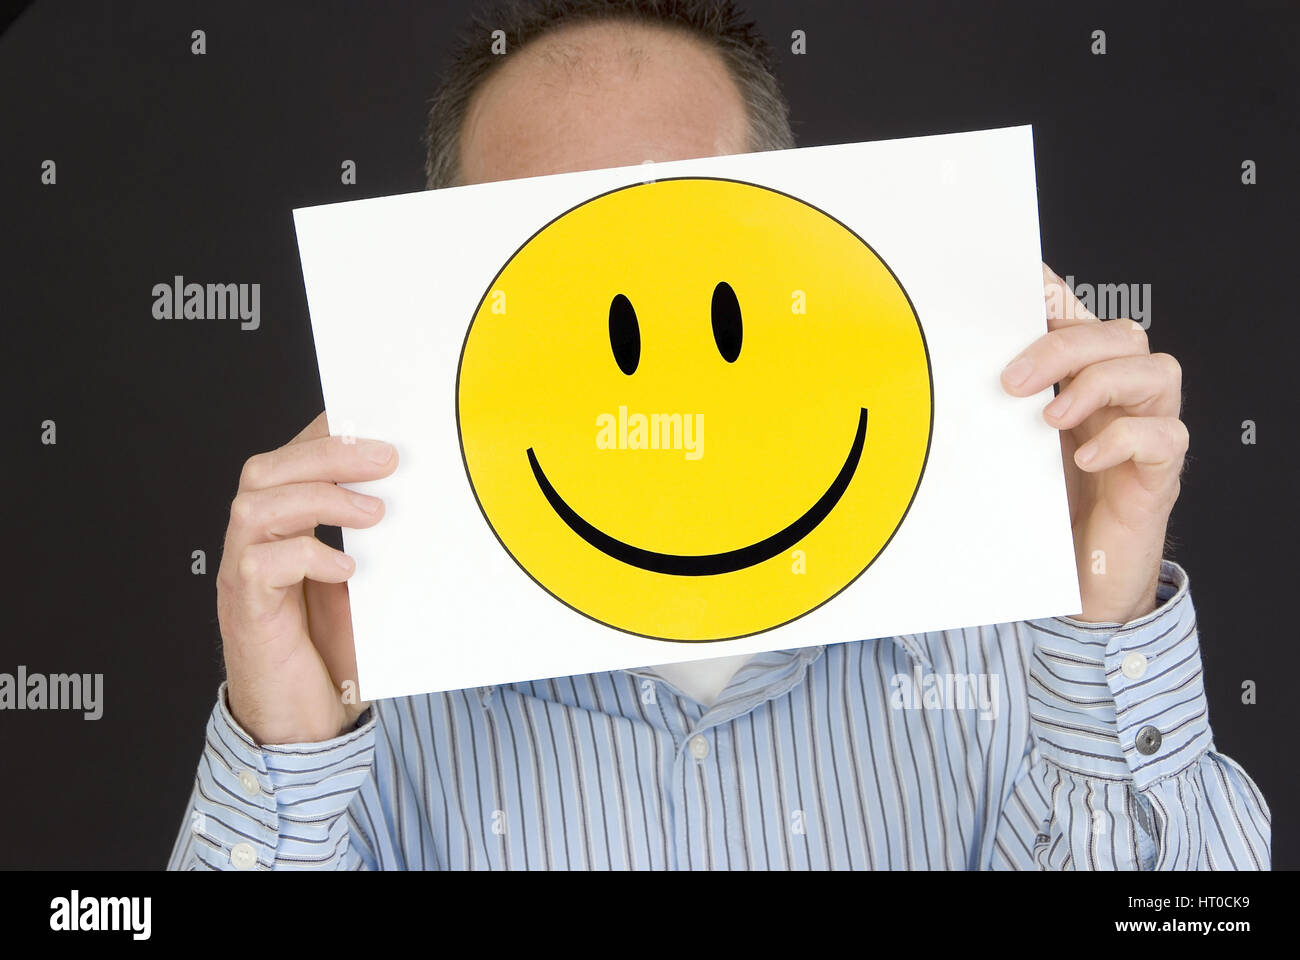 Mann mit lachendem Smileygesicht - man with laughing smiley face - Stock Image